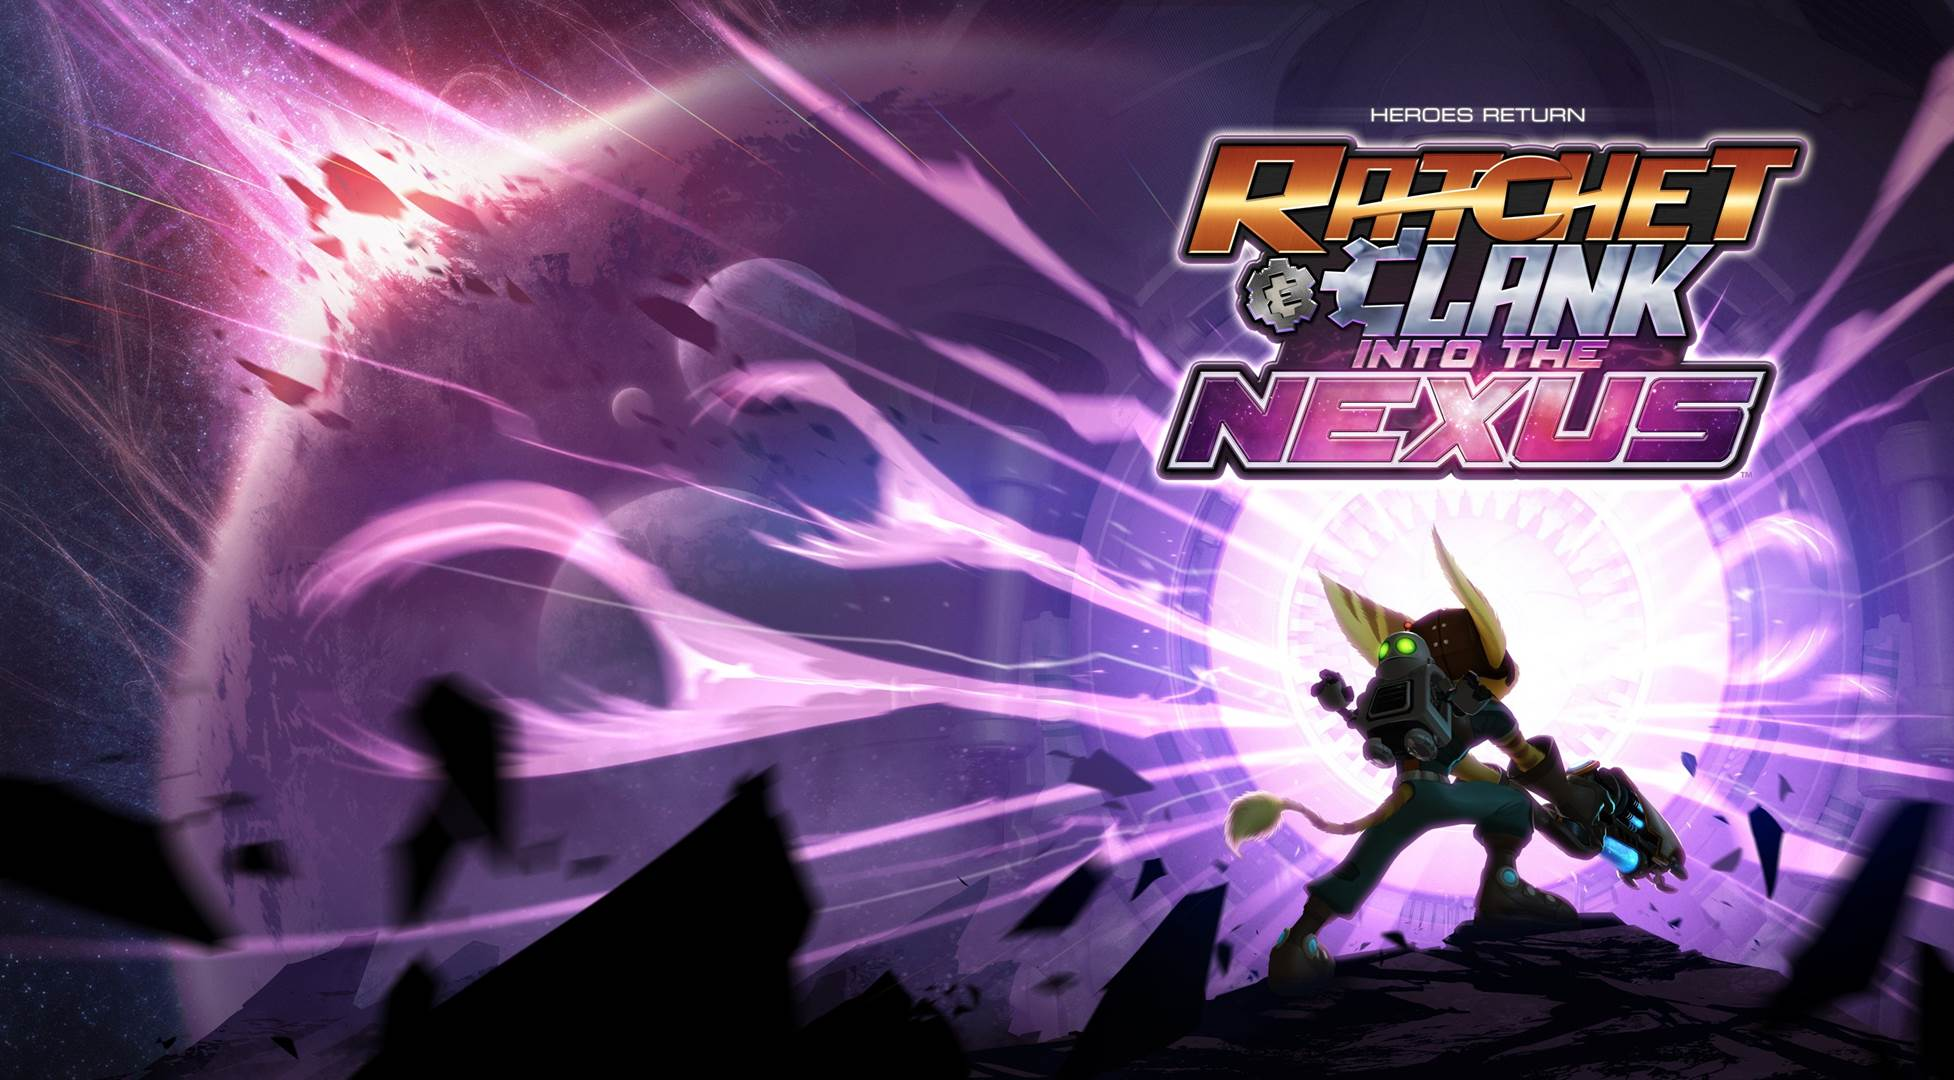 Thread: Ratchet & Clank: Into The Nexus [Official Thread]